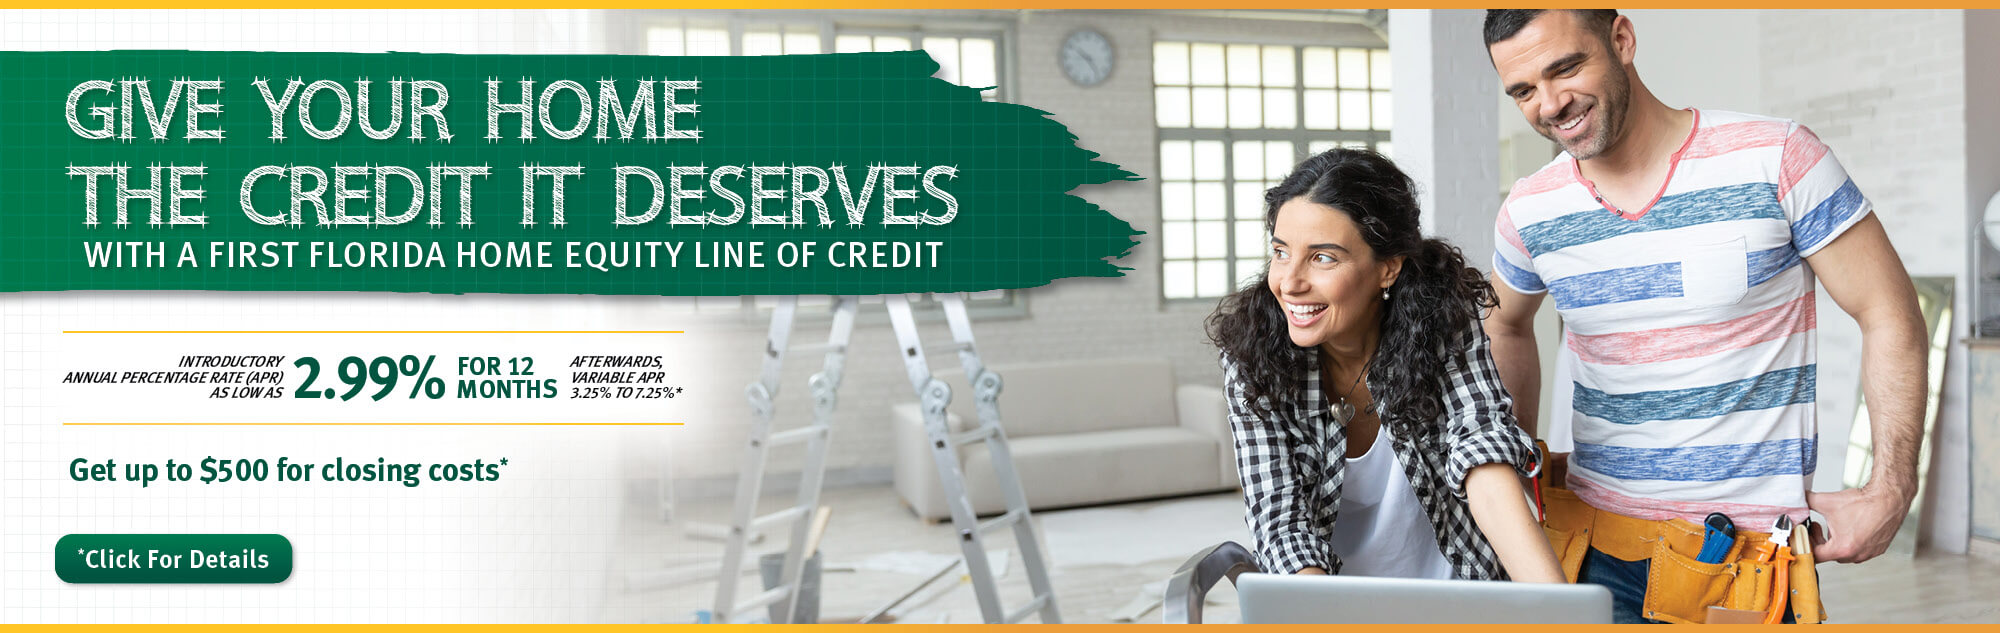 Give your home the credit it deserves with a First Florida Credit Union Home Equity Line of Credit